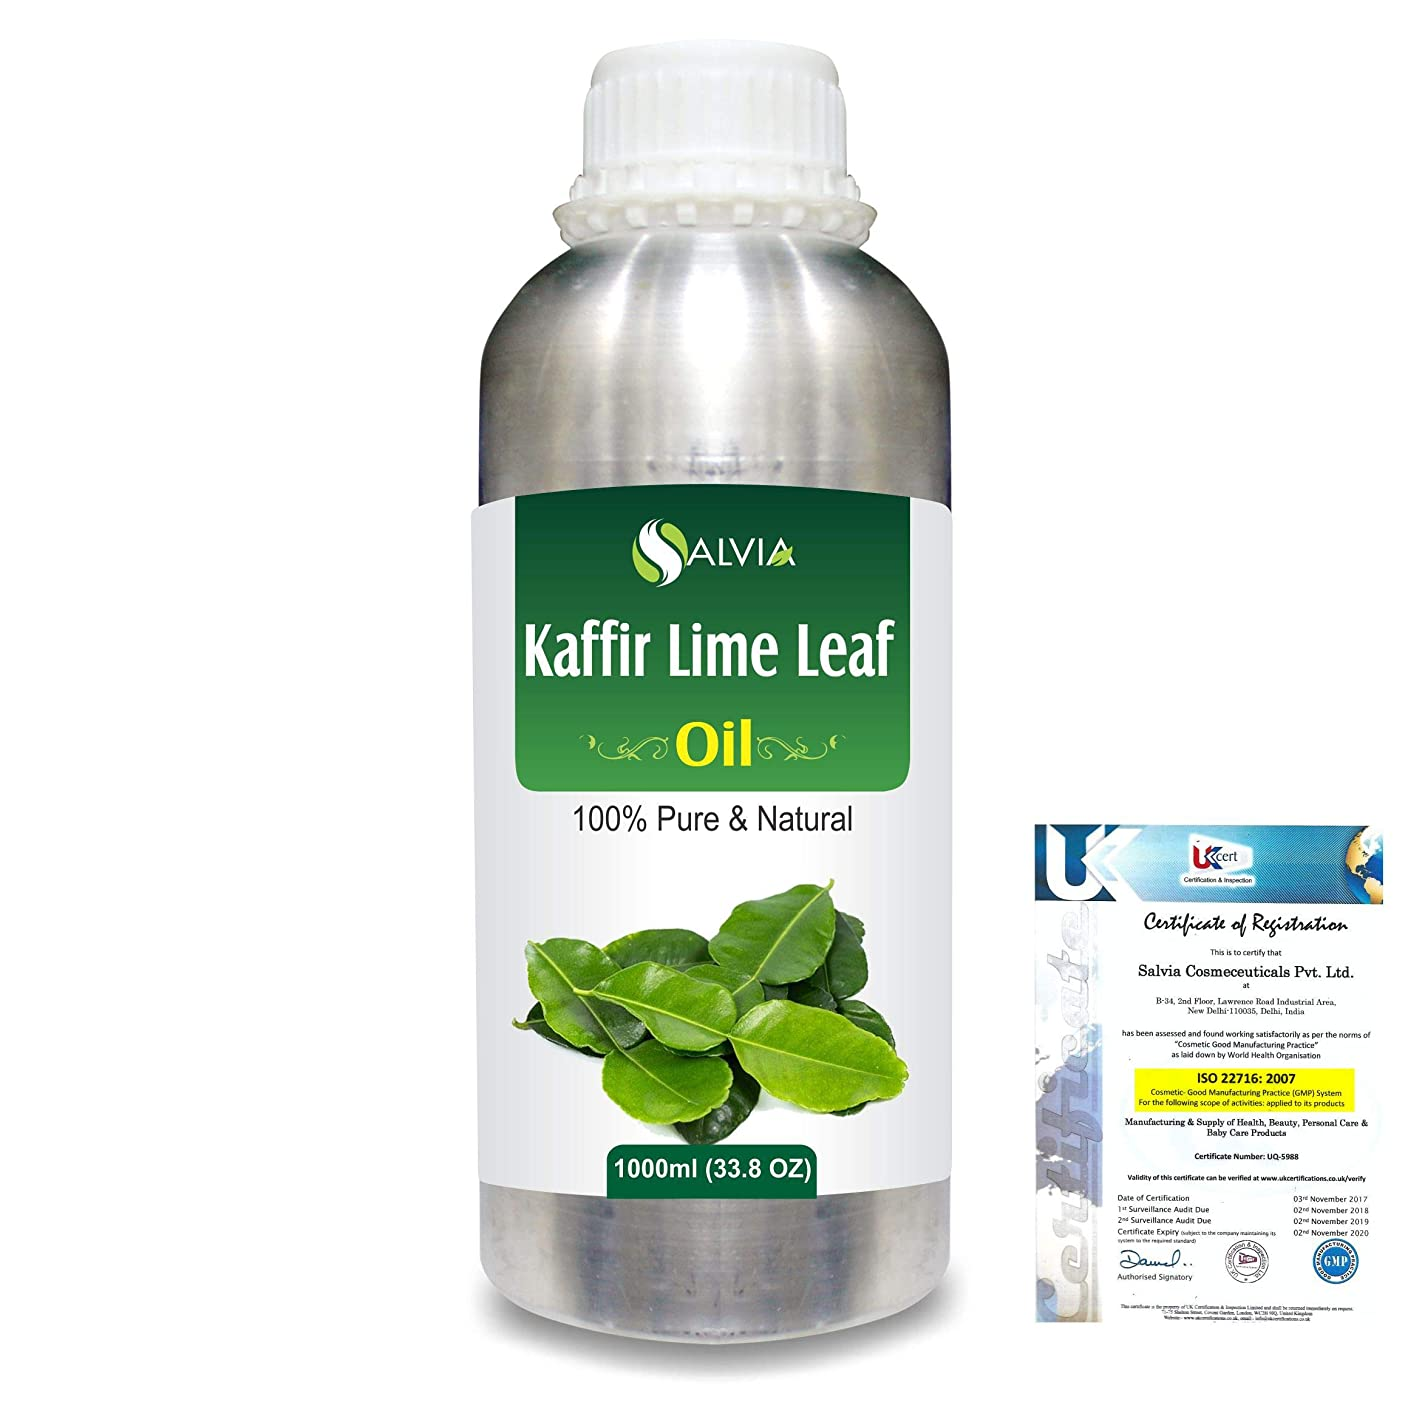 勝利したクレタネックレットKaffir Lime Leaf (Citrus Hystrix) 100% Natural Pure Essential Oil 1000ml/33.8fl.oz.